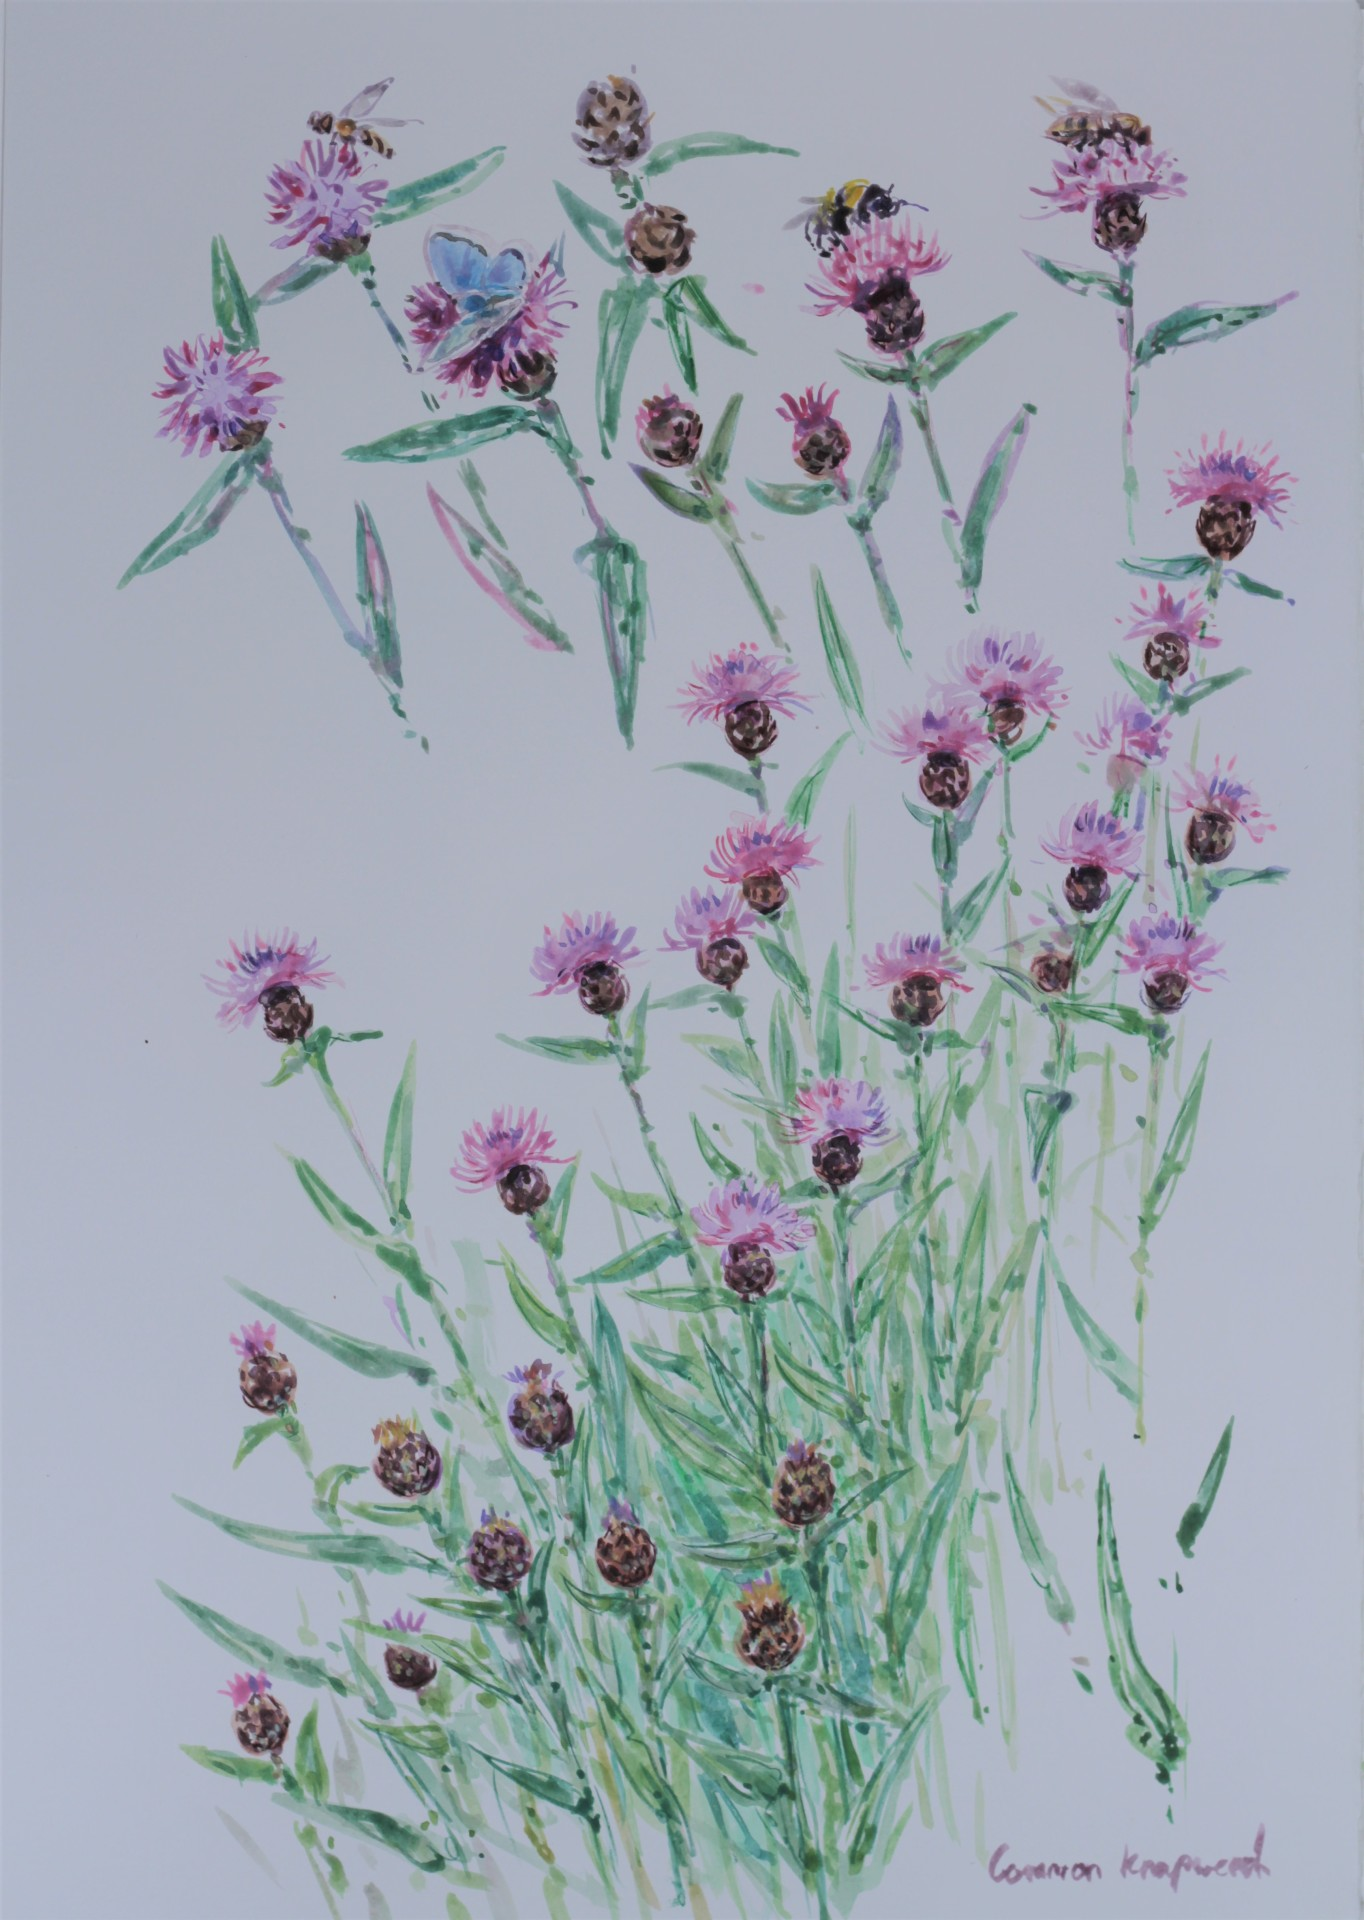 Bumble Bee on Knapweed Studies